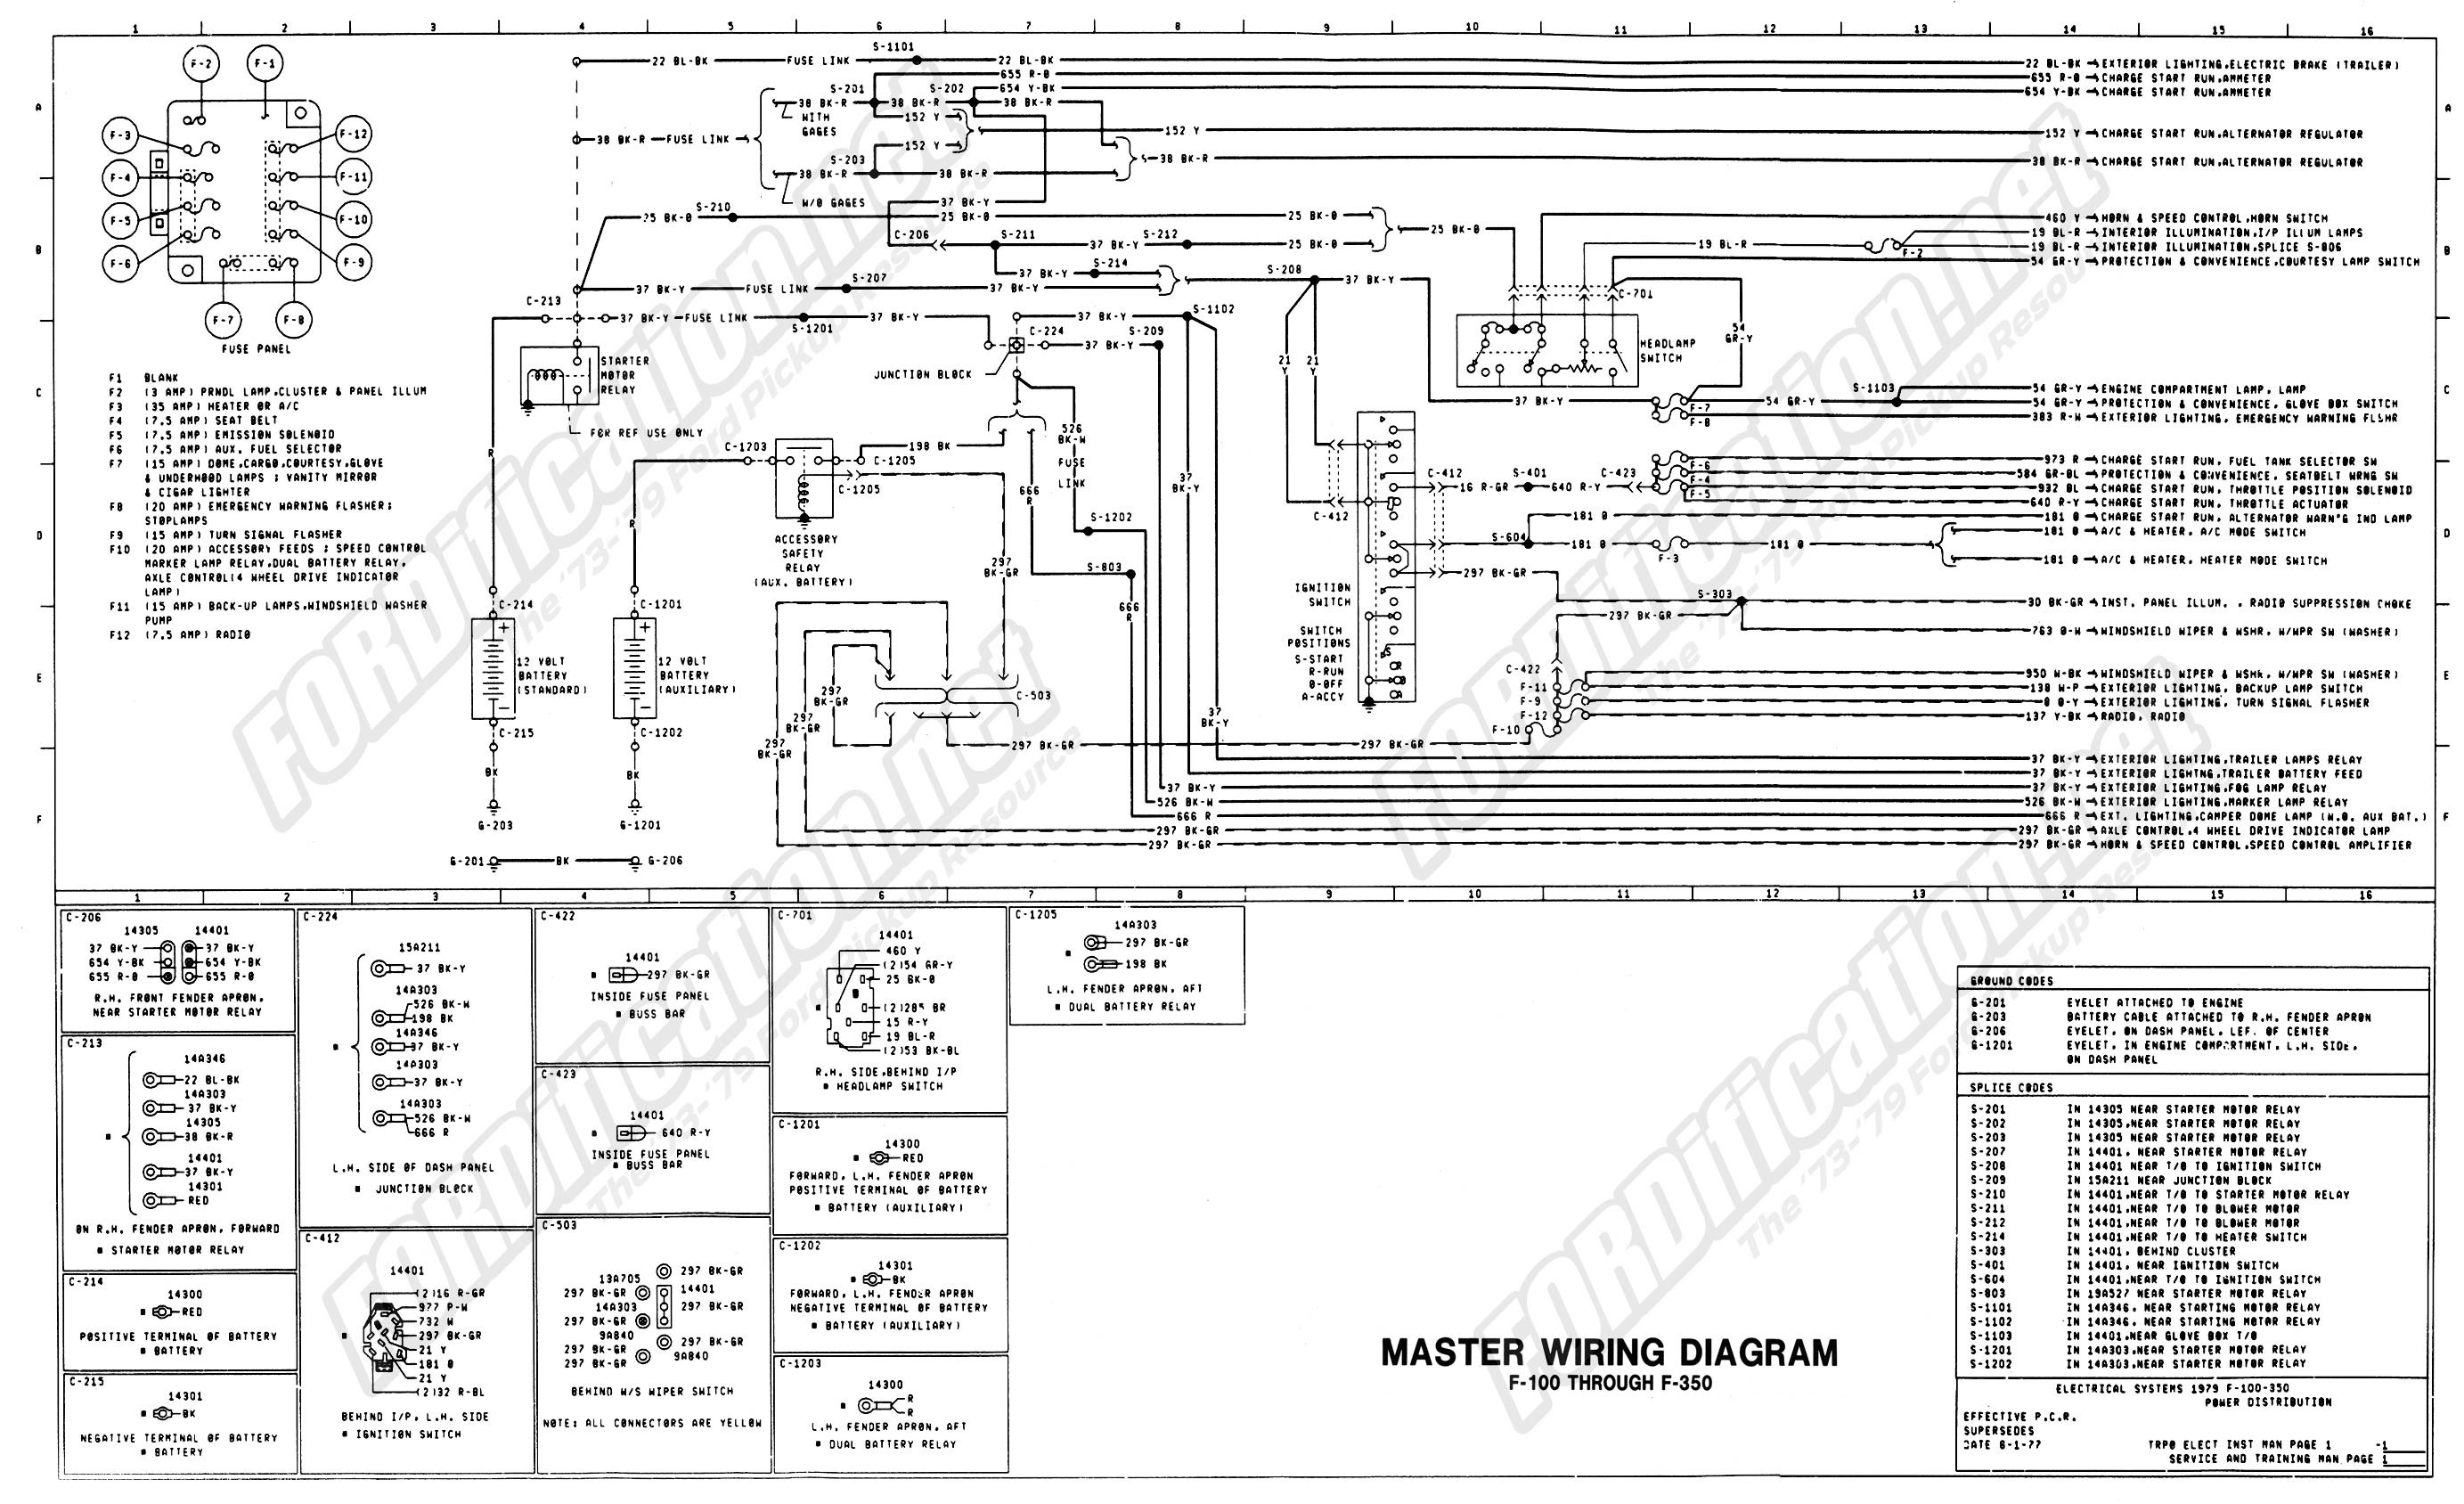 1999 ford f150 radio wiring diagram unique wiring diagram image rh mainetreasurechest com 2005 Sterling Acterra Wiring Diagrams 2003 Sterling Wiring Diagram Stereo